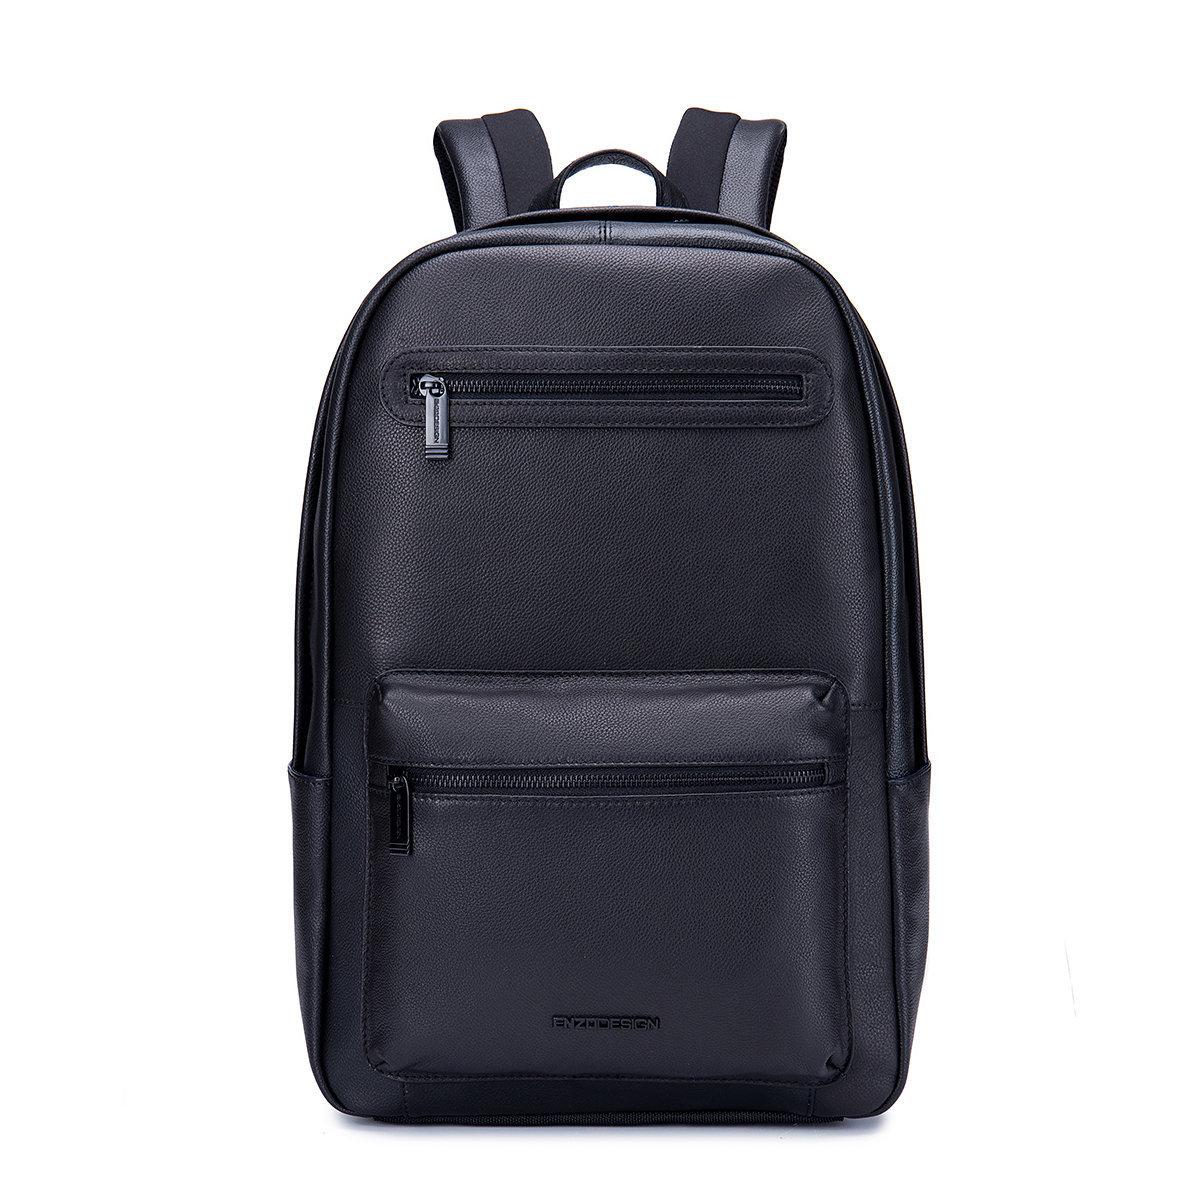 "Cow Nappa Leather Business 15"" Laptop Light Weight Backpack"